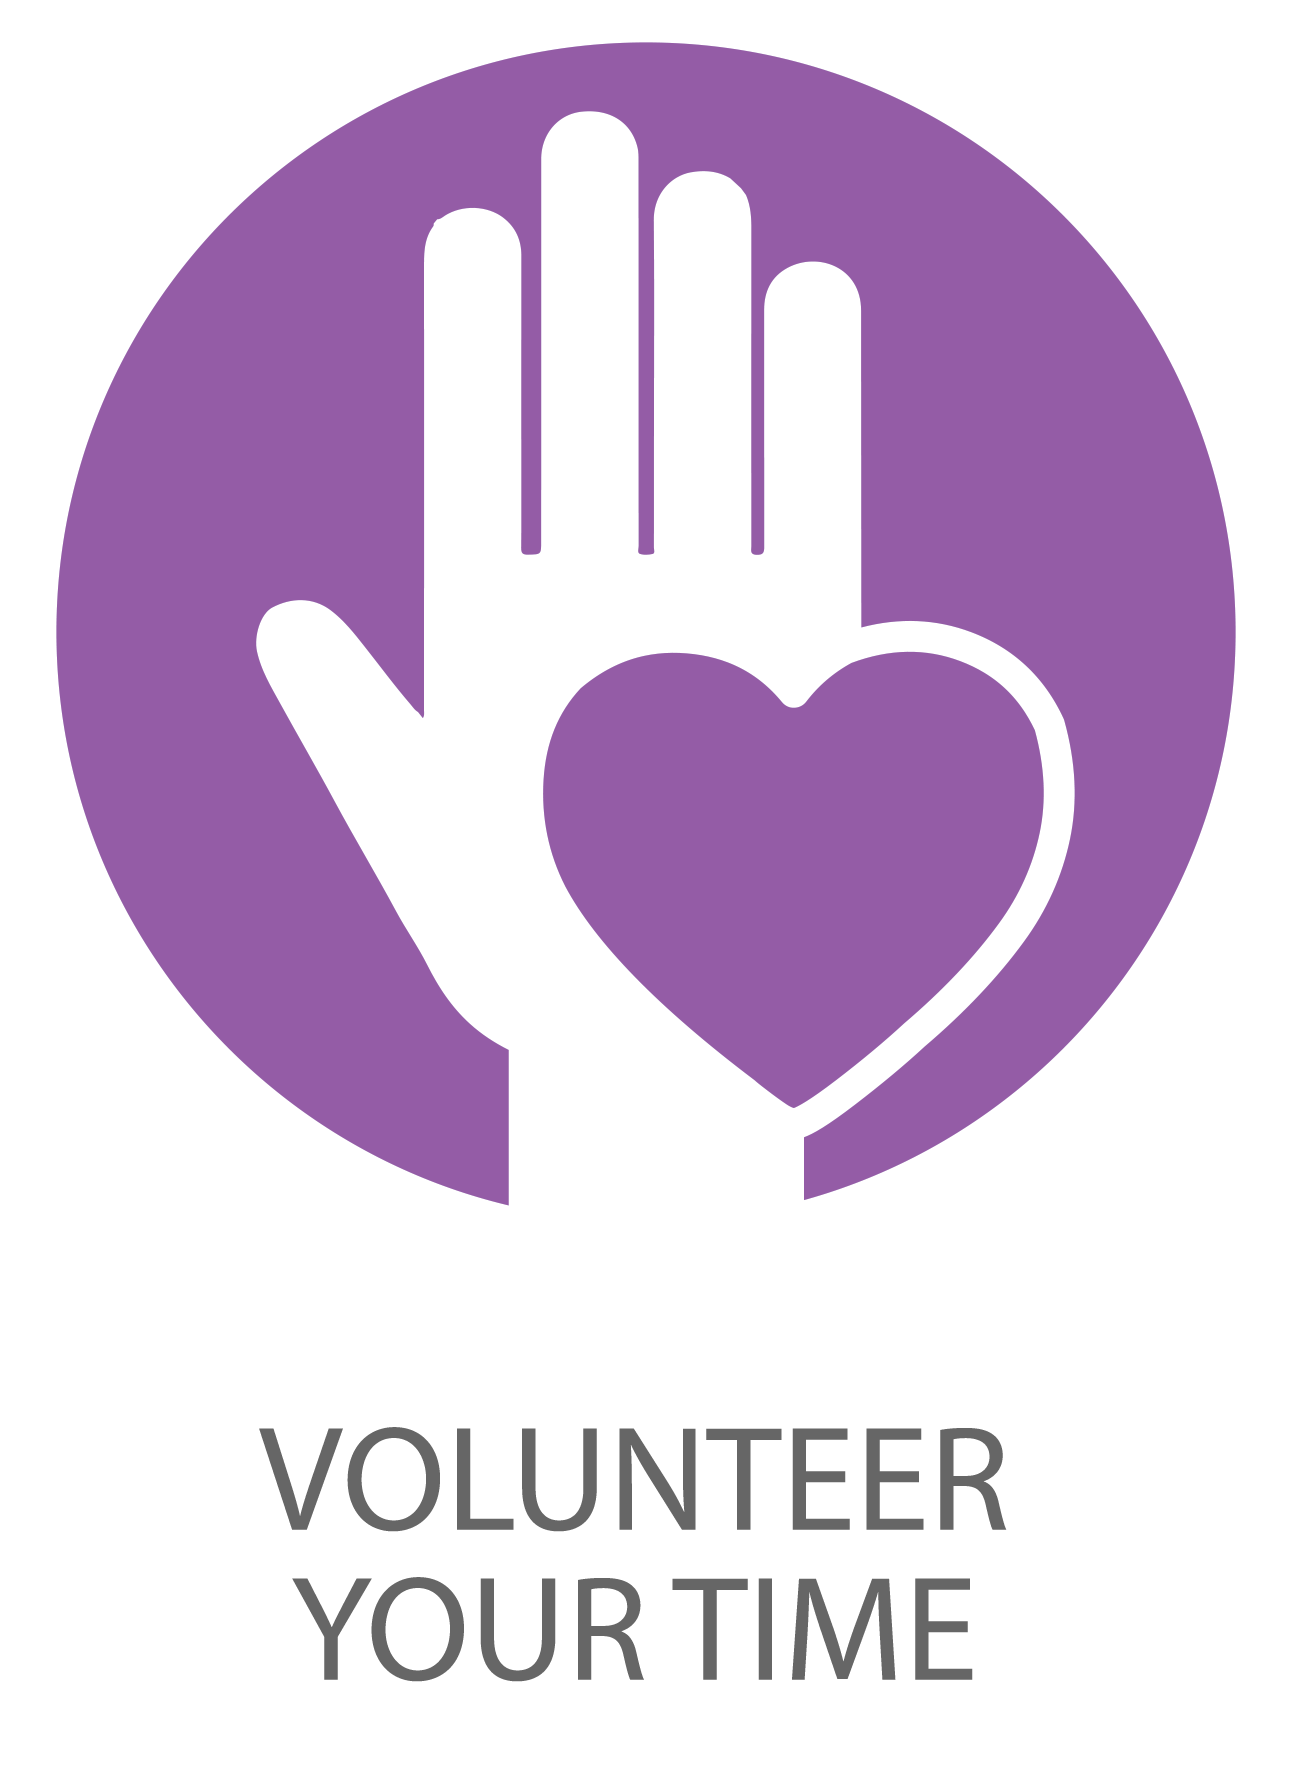 Icon of hand with a heart symbolizing volunteer your time